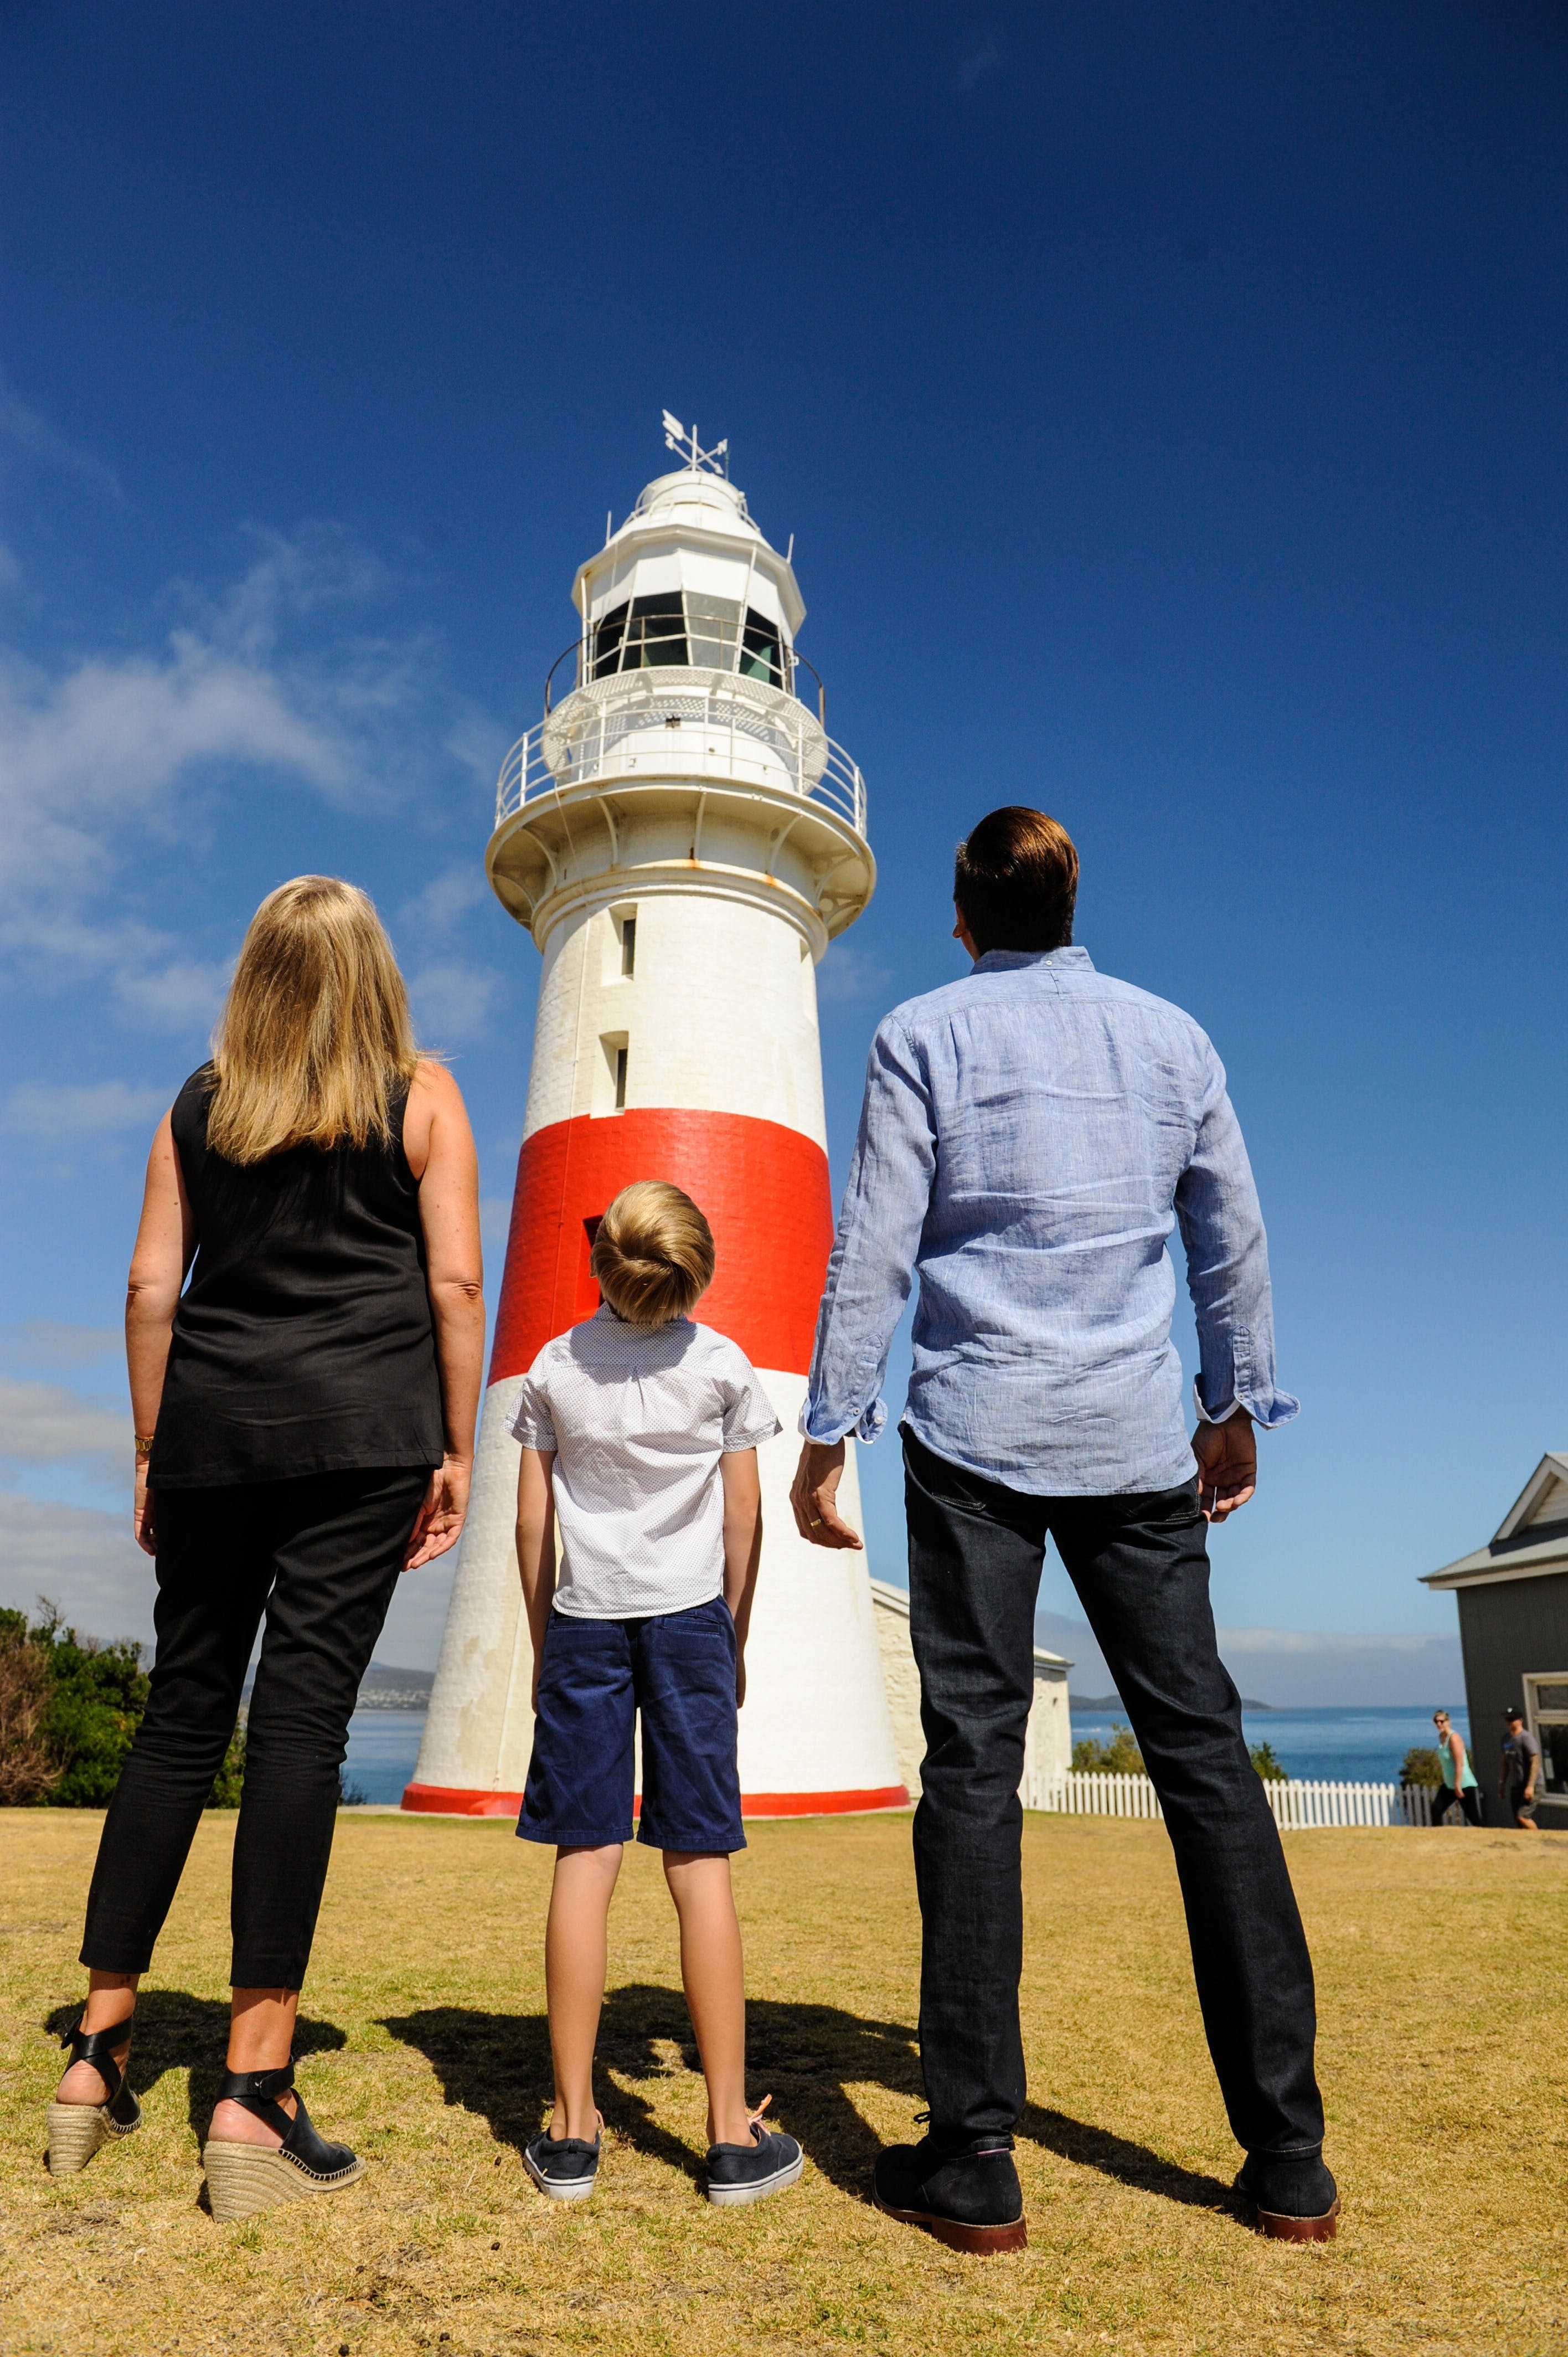 Enjoy viewing one of Tasmania's most accessible Lighthouses